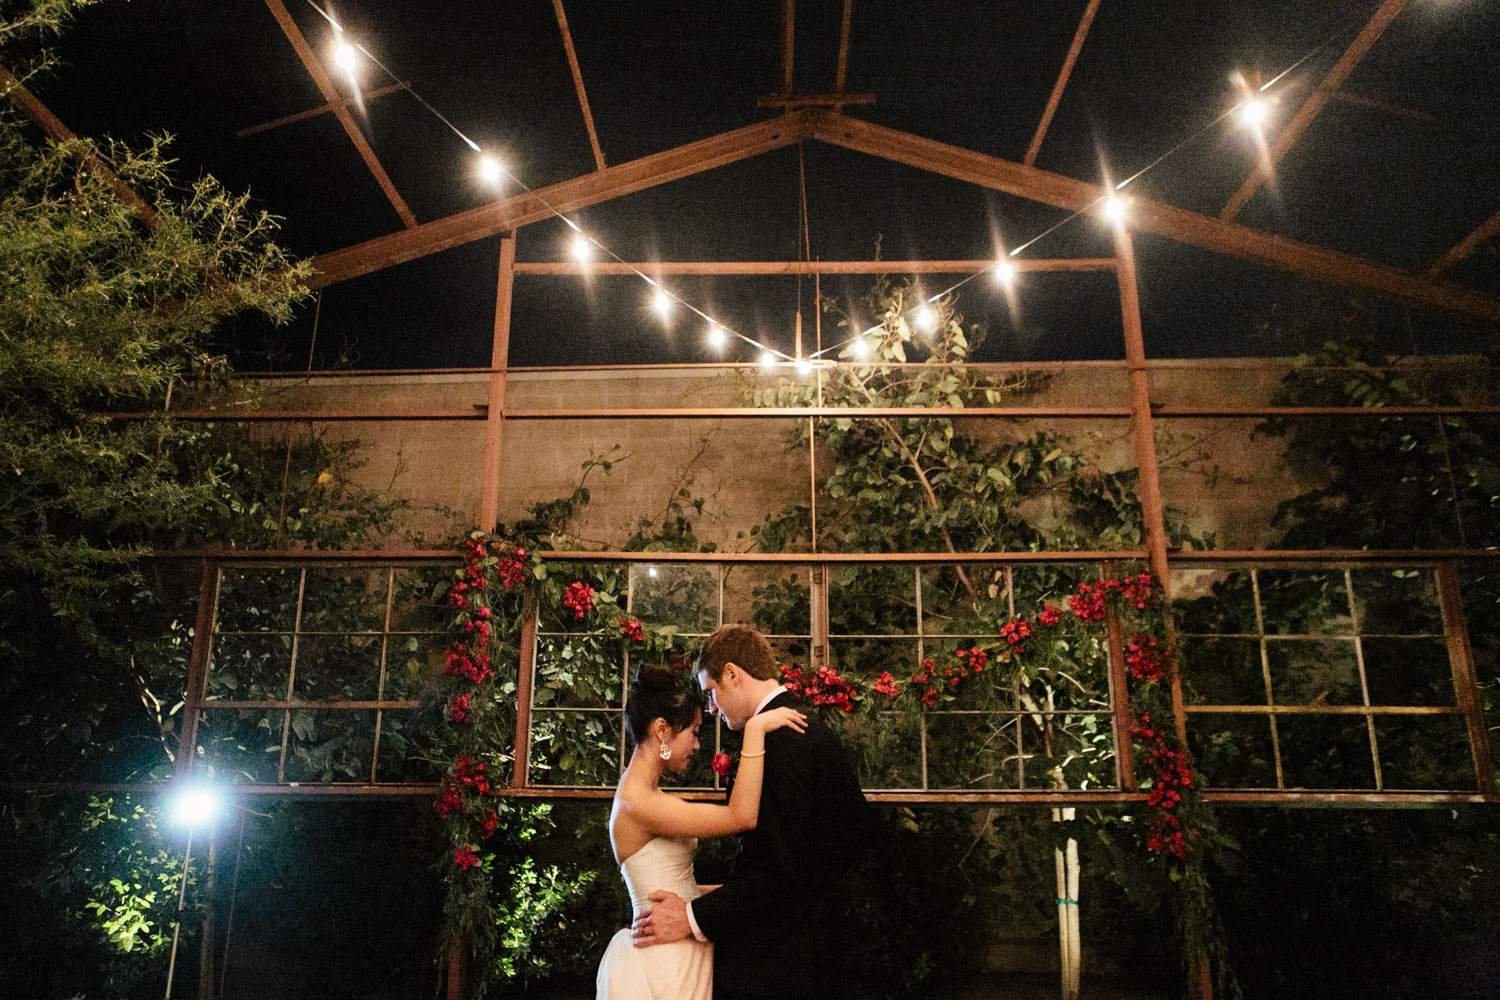 Los Angeles Wedding Photographer, The Elysian  - The Gathering Season x weareleoandkat 085.JPG